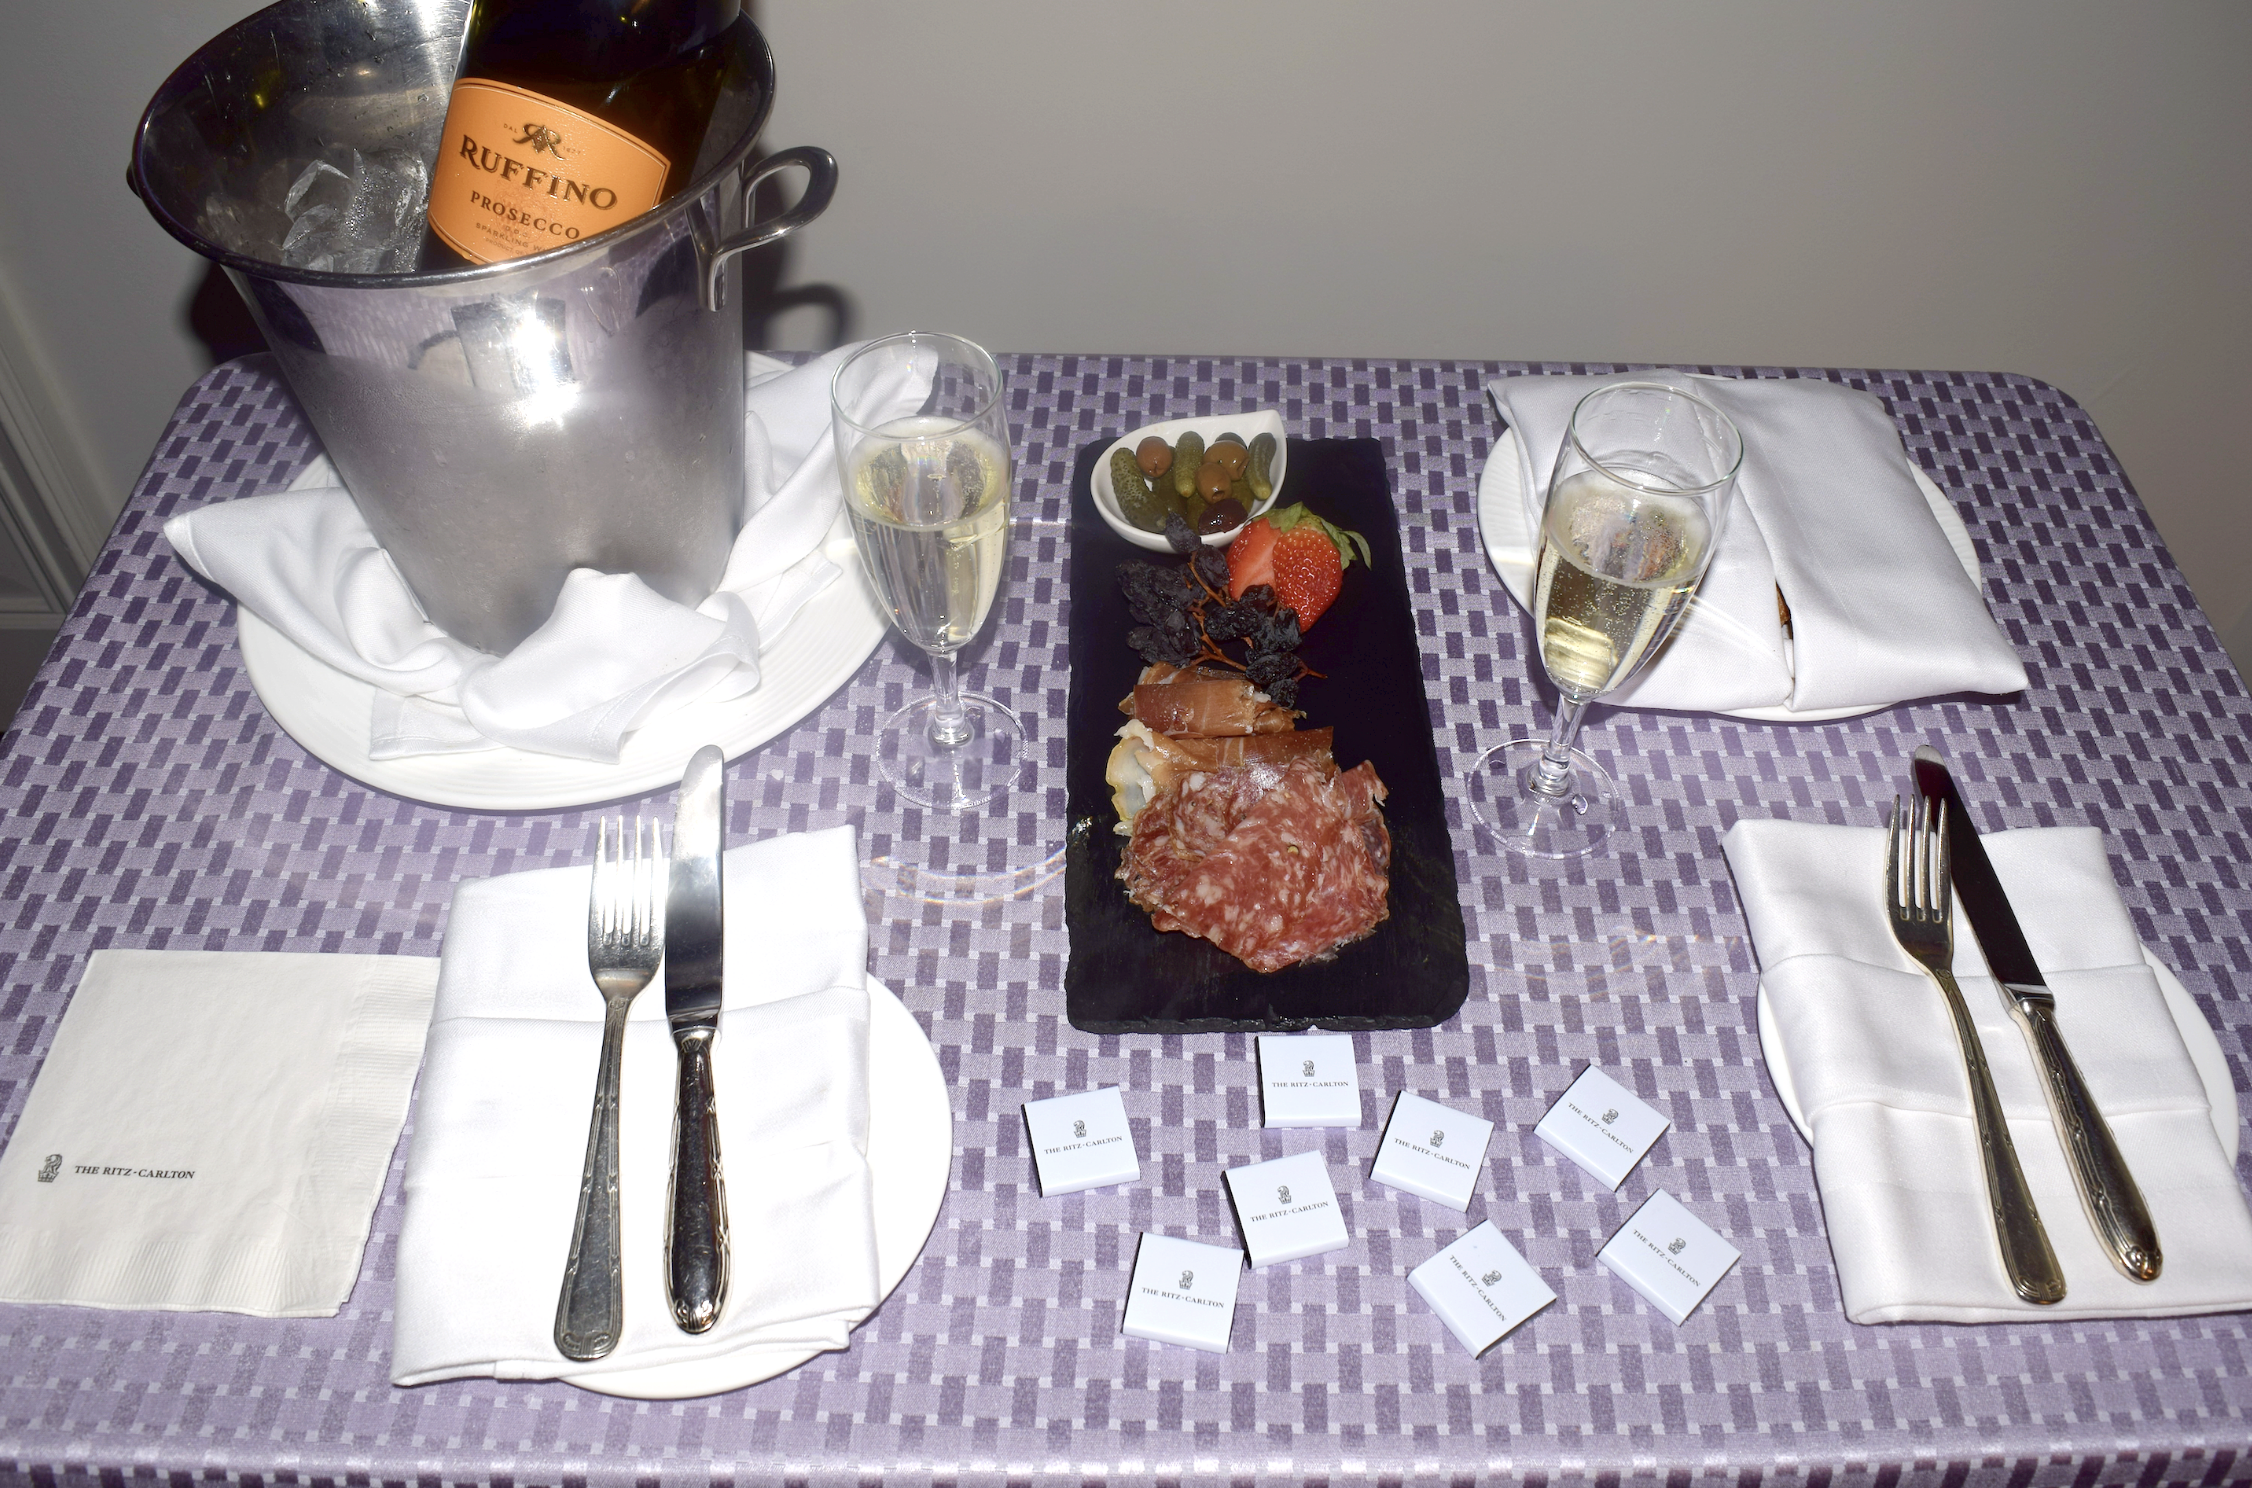 A warm welcome at The Ritz-Carlton Pentagon City where we were served a bottle of sparkling wine and a cheese andcharcuterie board upon our arrival.